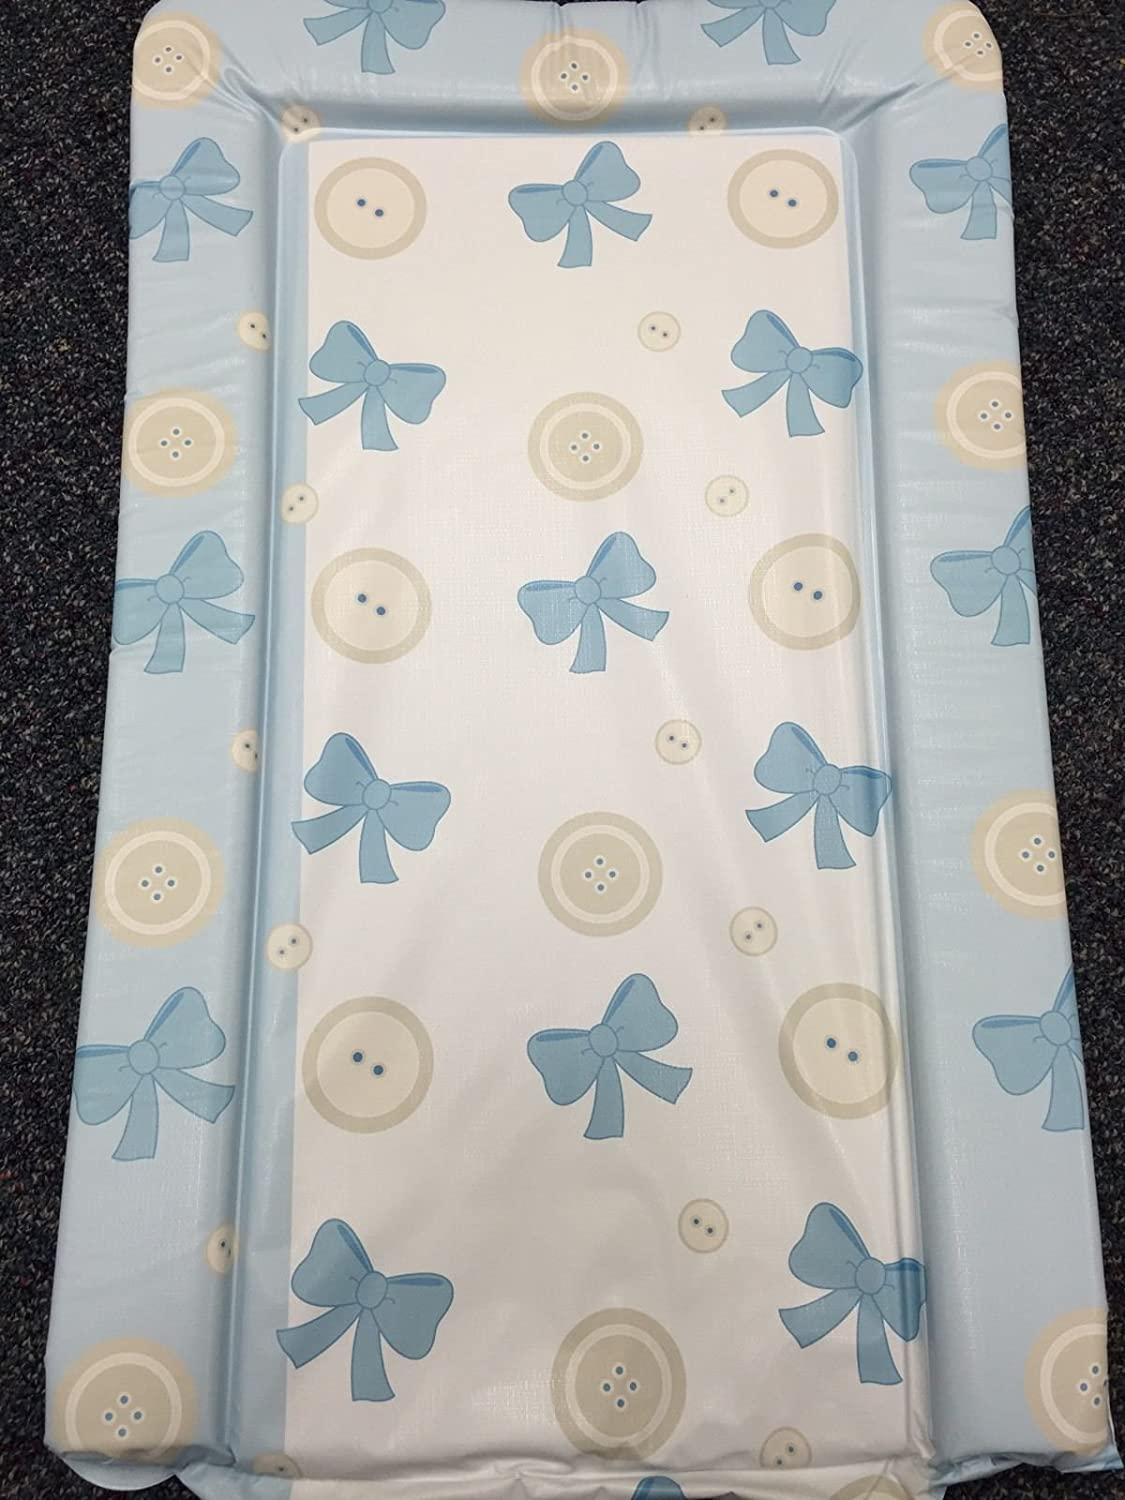 Buttons /& Bows Design Deluxe Unisex Baby Waterproof Changing Mat with Raised Edges Blue